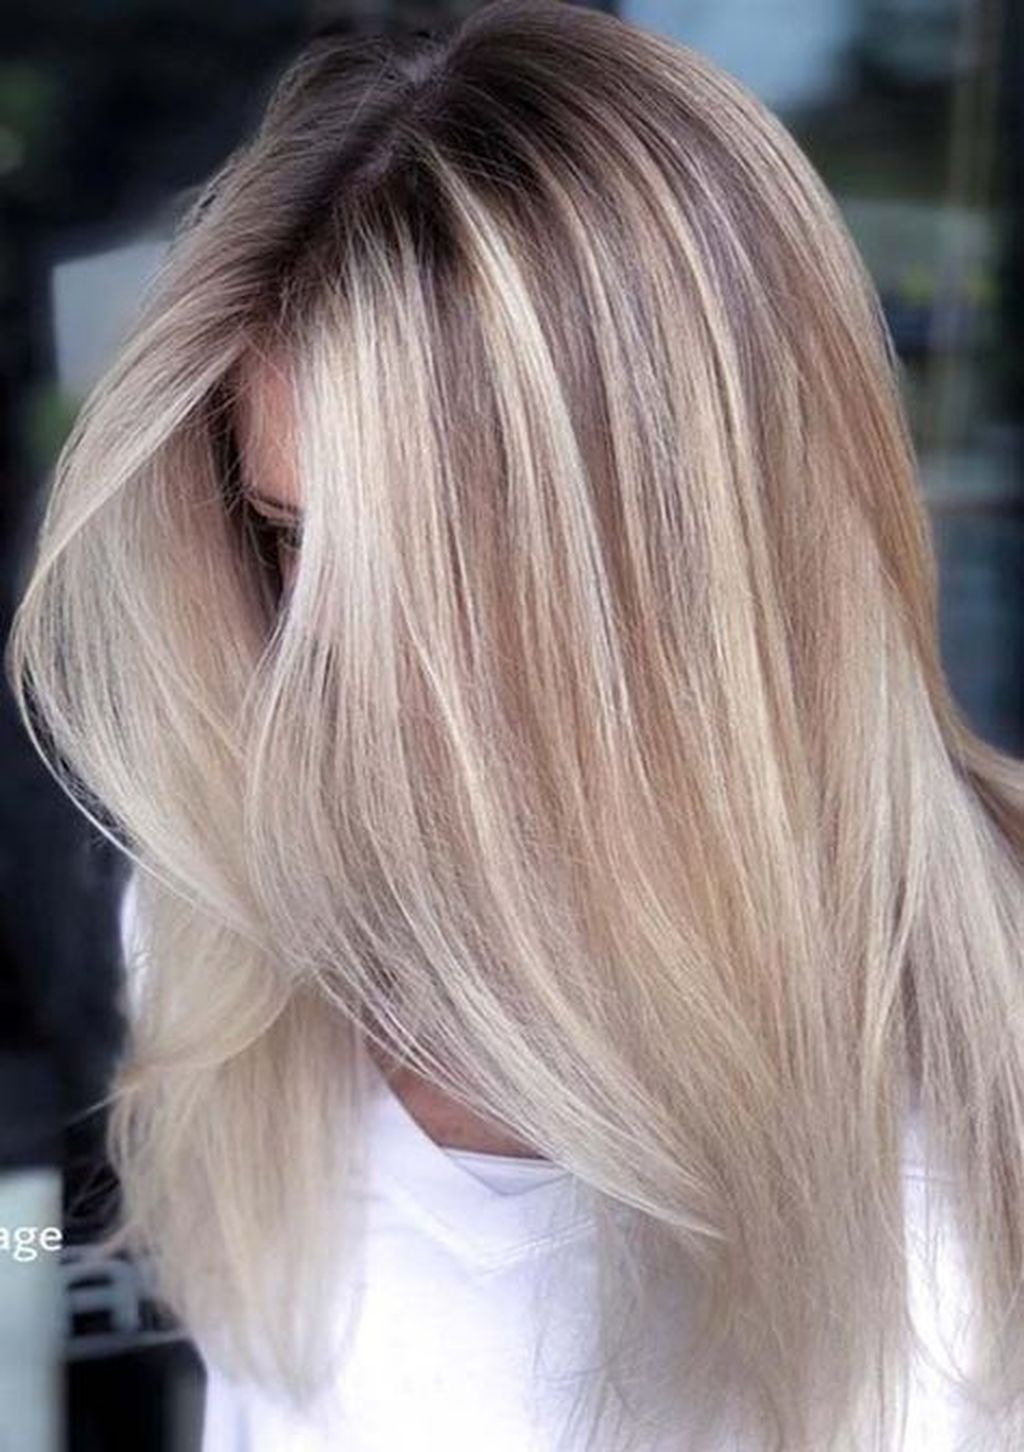 30 Best Hair Coloring Ideas For Hairstyles Women Over 60 Balayage Straight Hair Balayage Hair Hair Color Highlights